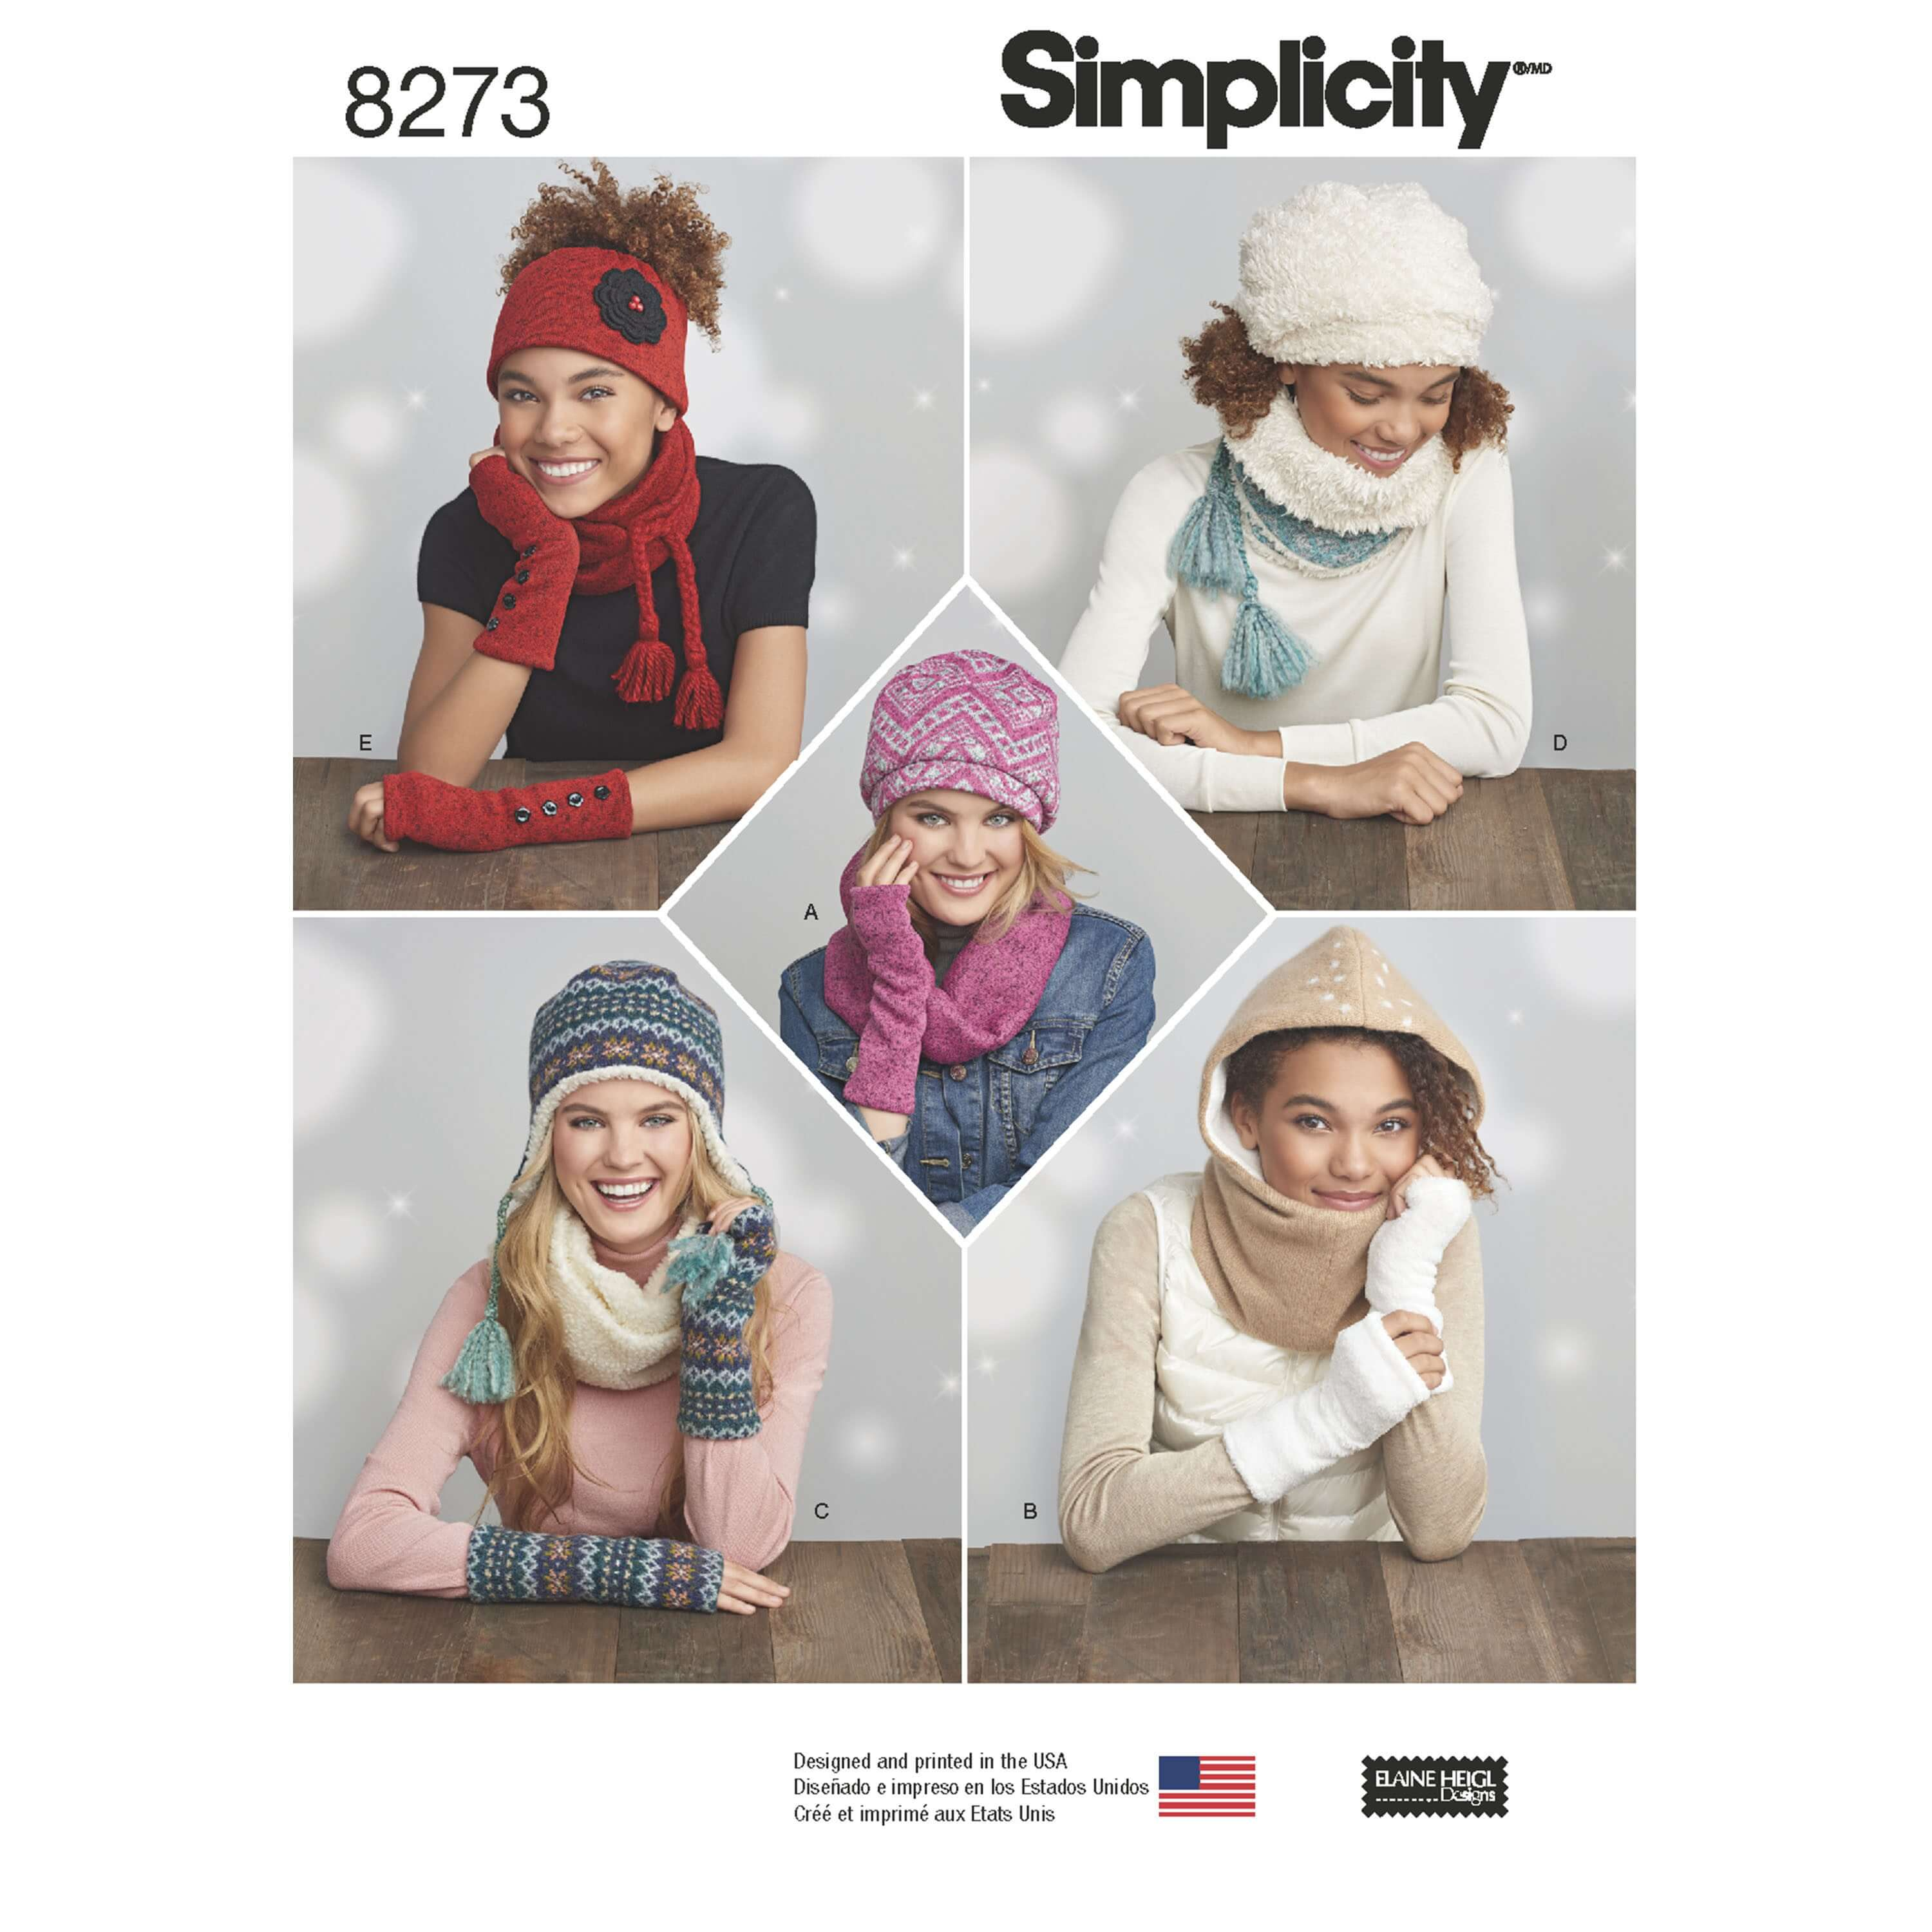 Simplicity Sewing Pattern 8273 Women's Cold Weather Knit Accessories